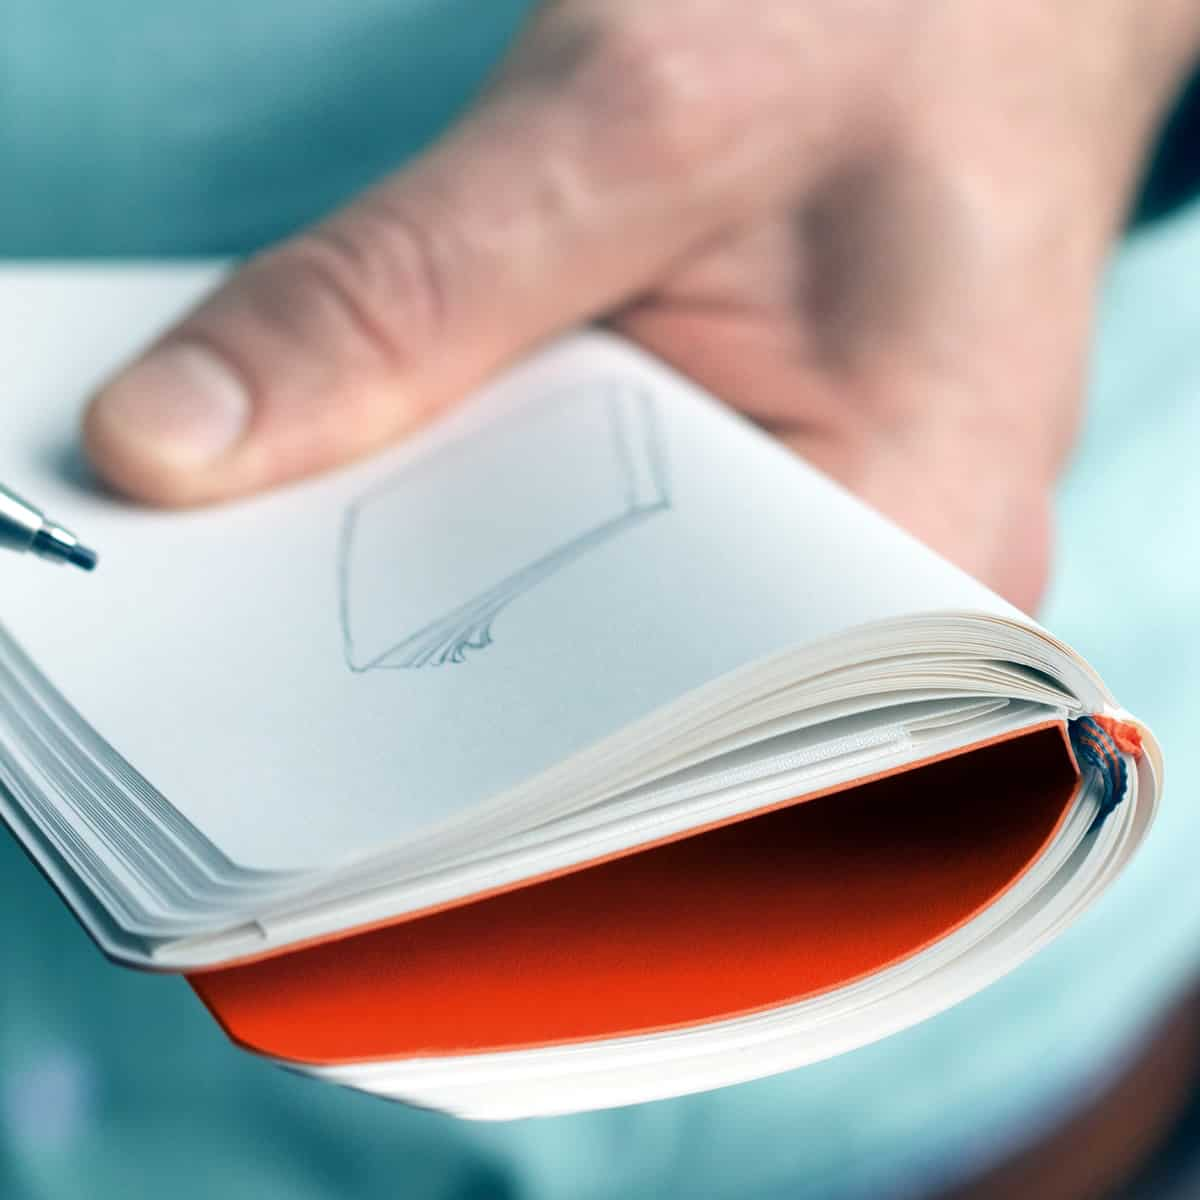 Close-up of a hand holding an opened Notebook Pocket A6 with a drawing of a notebook on the page.